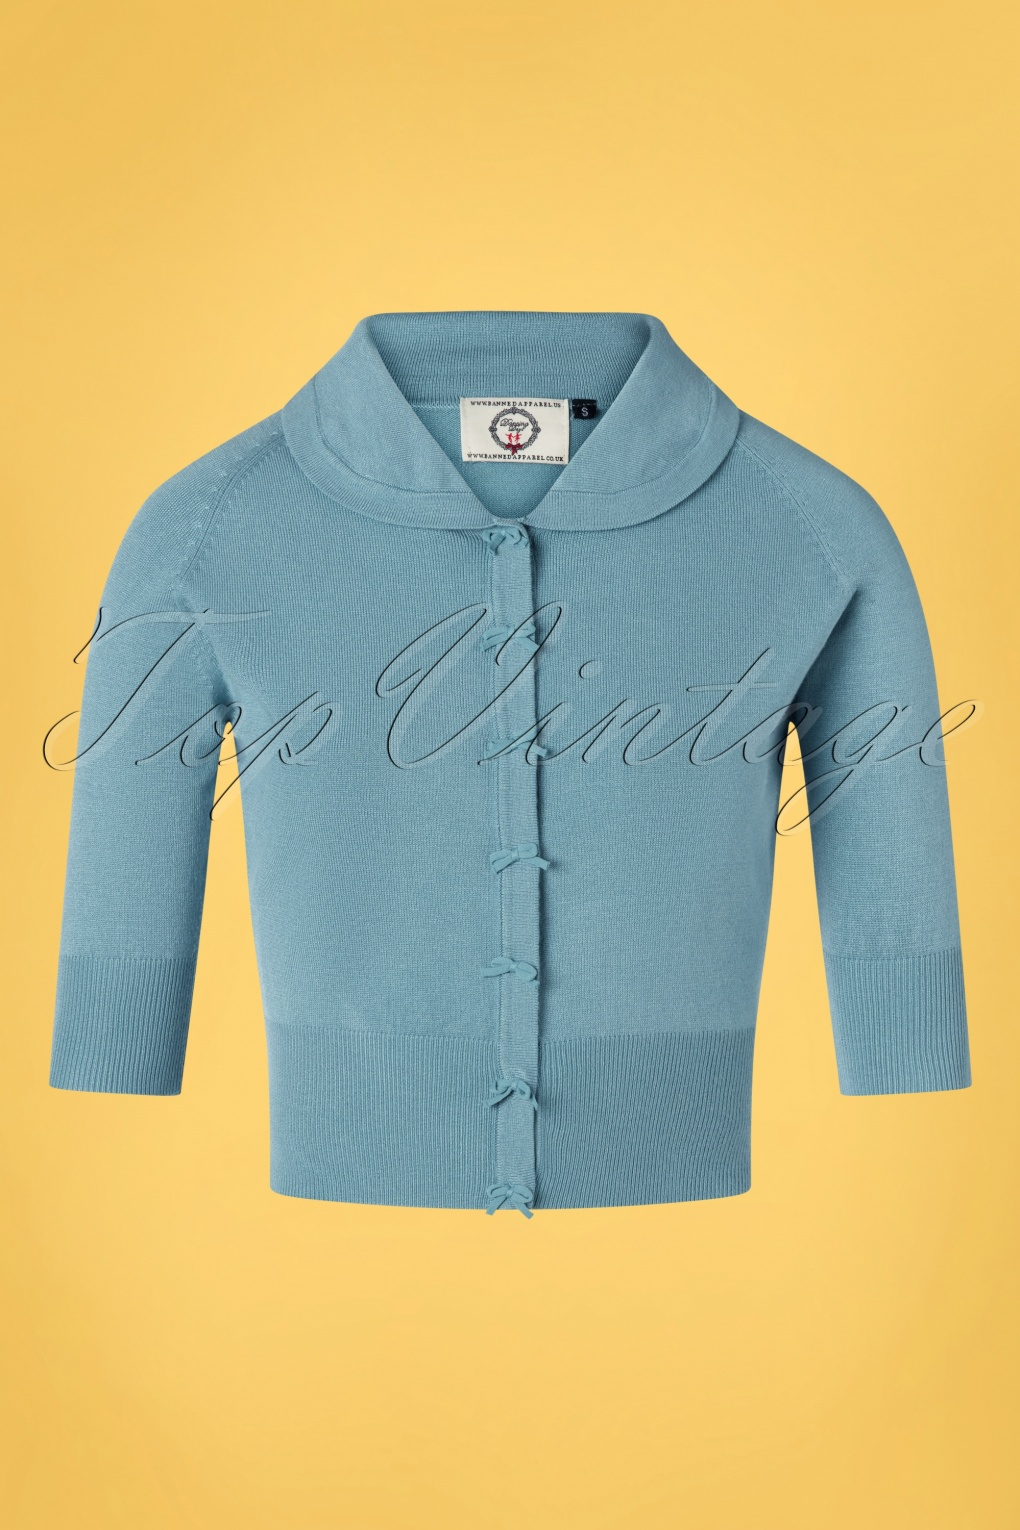 Vintage Sweaters & Cardigans: 1940s, 1950s, 1960s 40s April Bow Cardigan in Baby Blue £34.32 AT vintagedancer.com